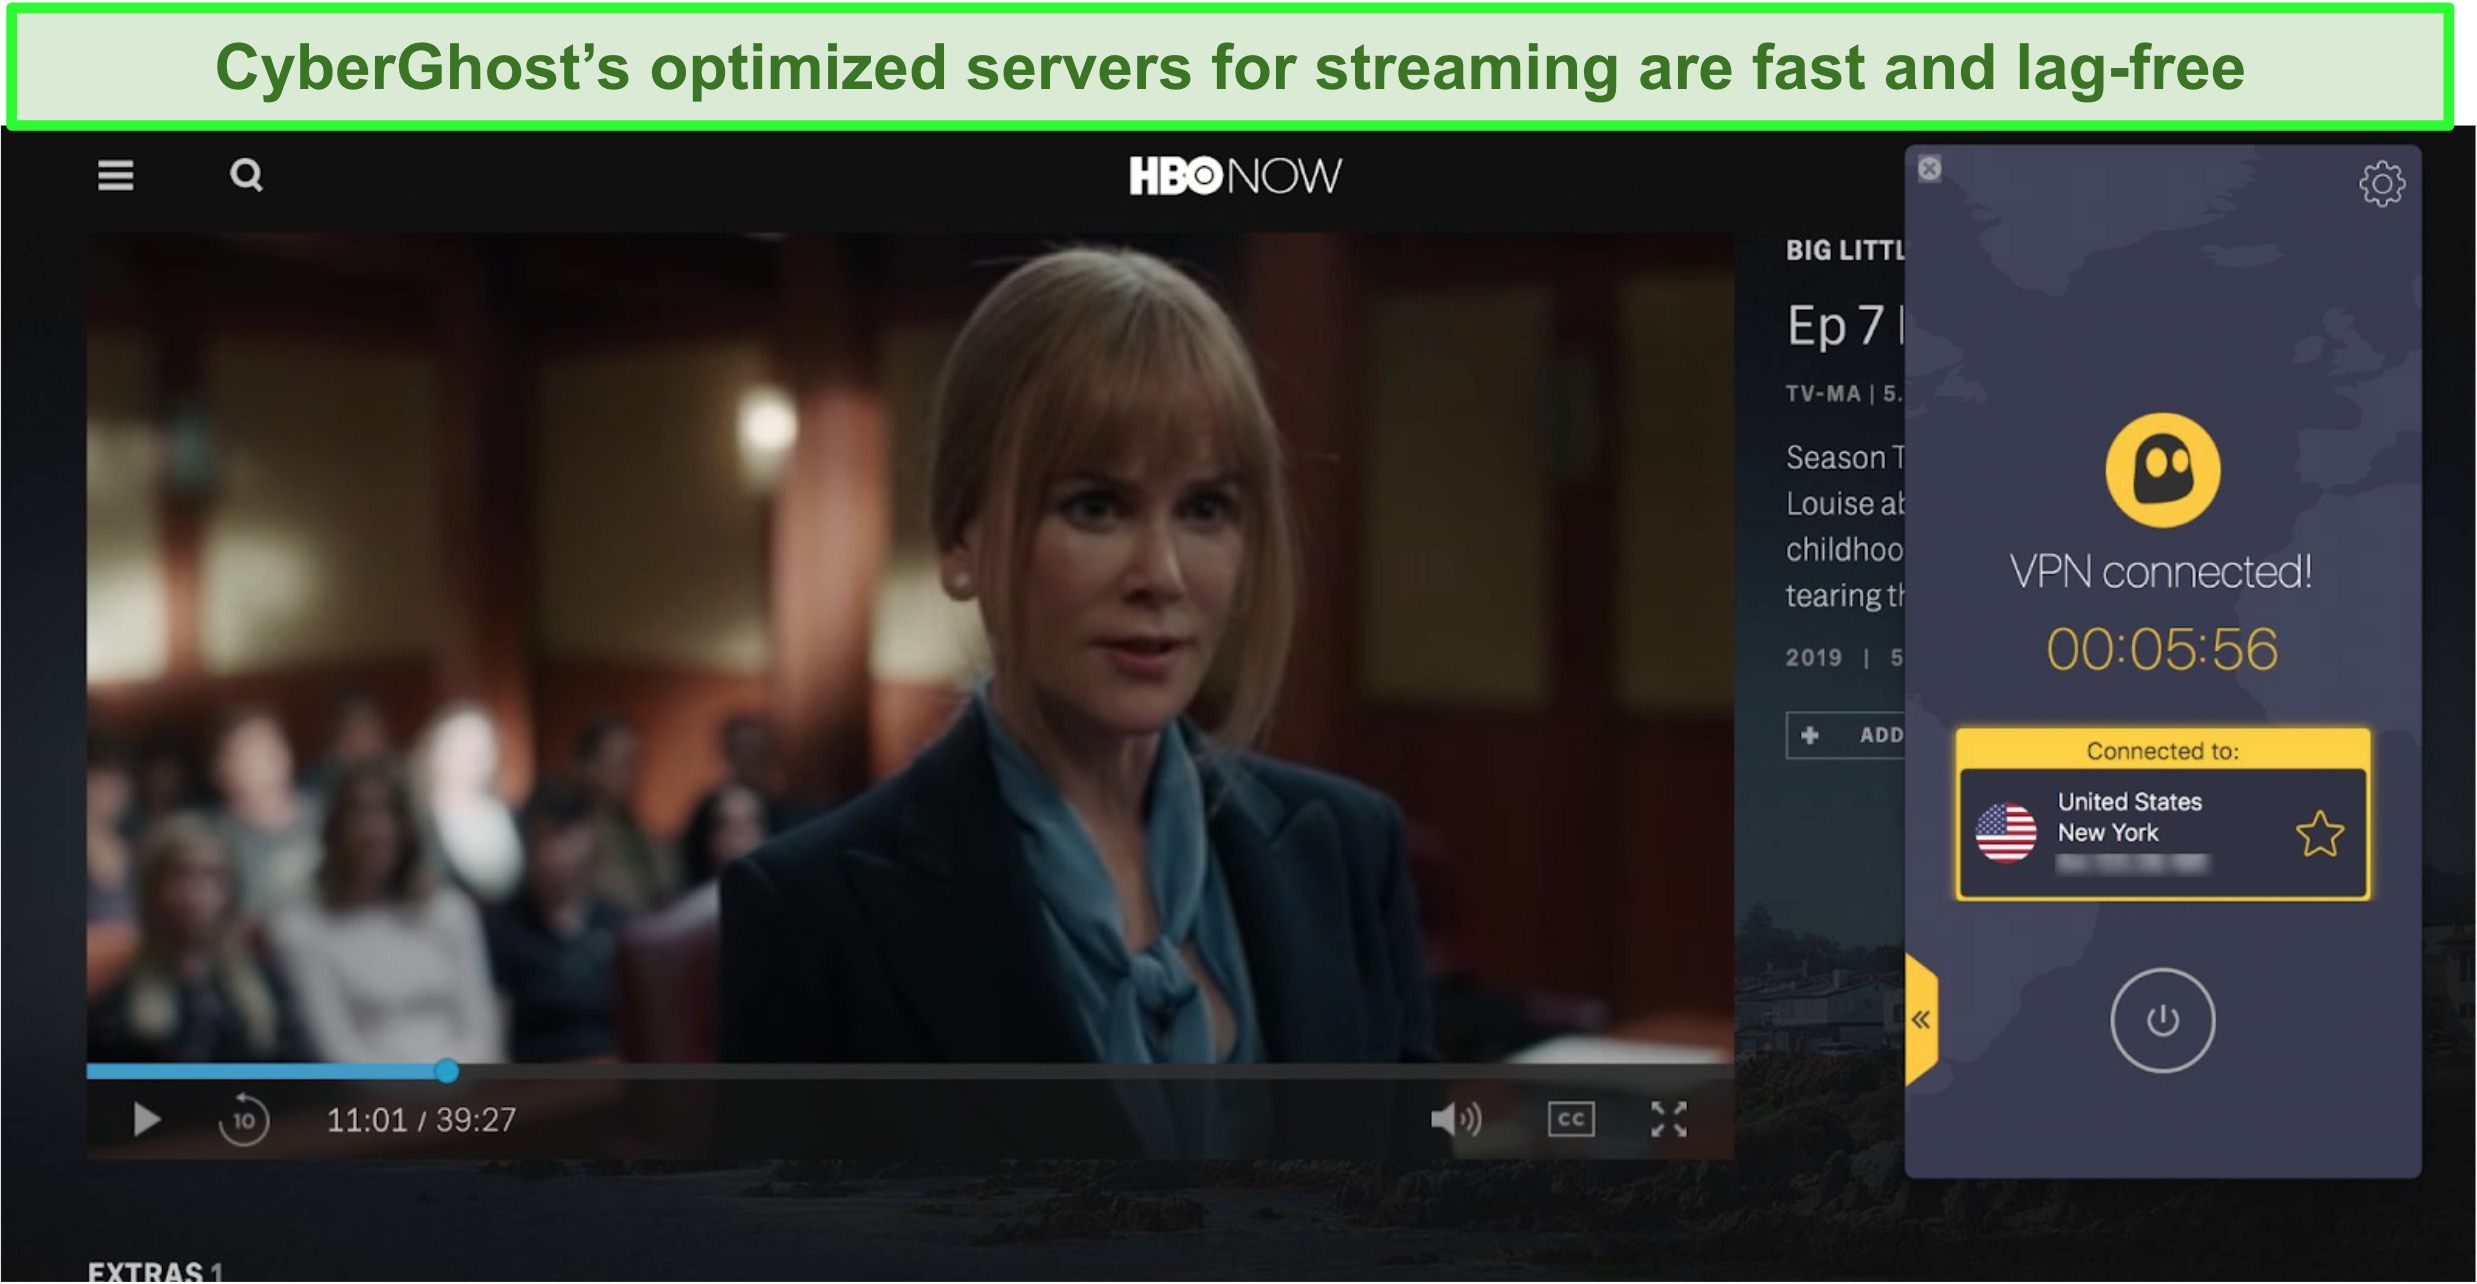 Screenshot of HBO Now playing Big Little Lies with CyberGhost connected to a US server